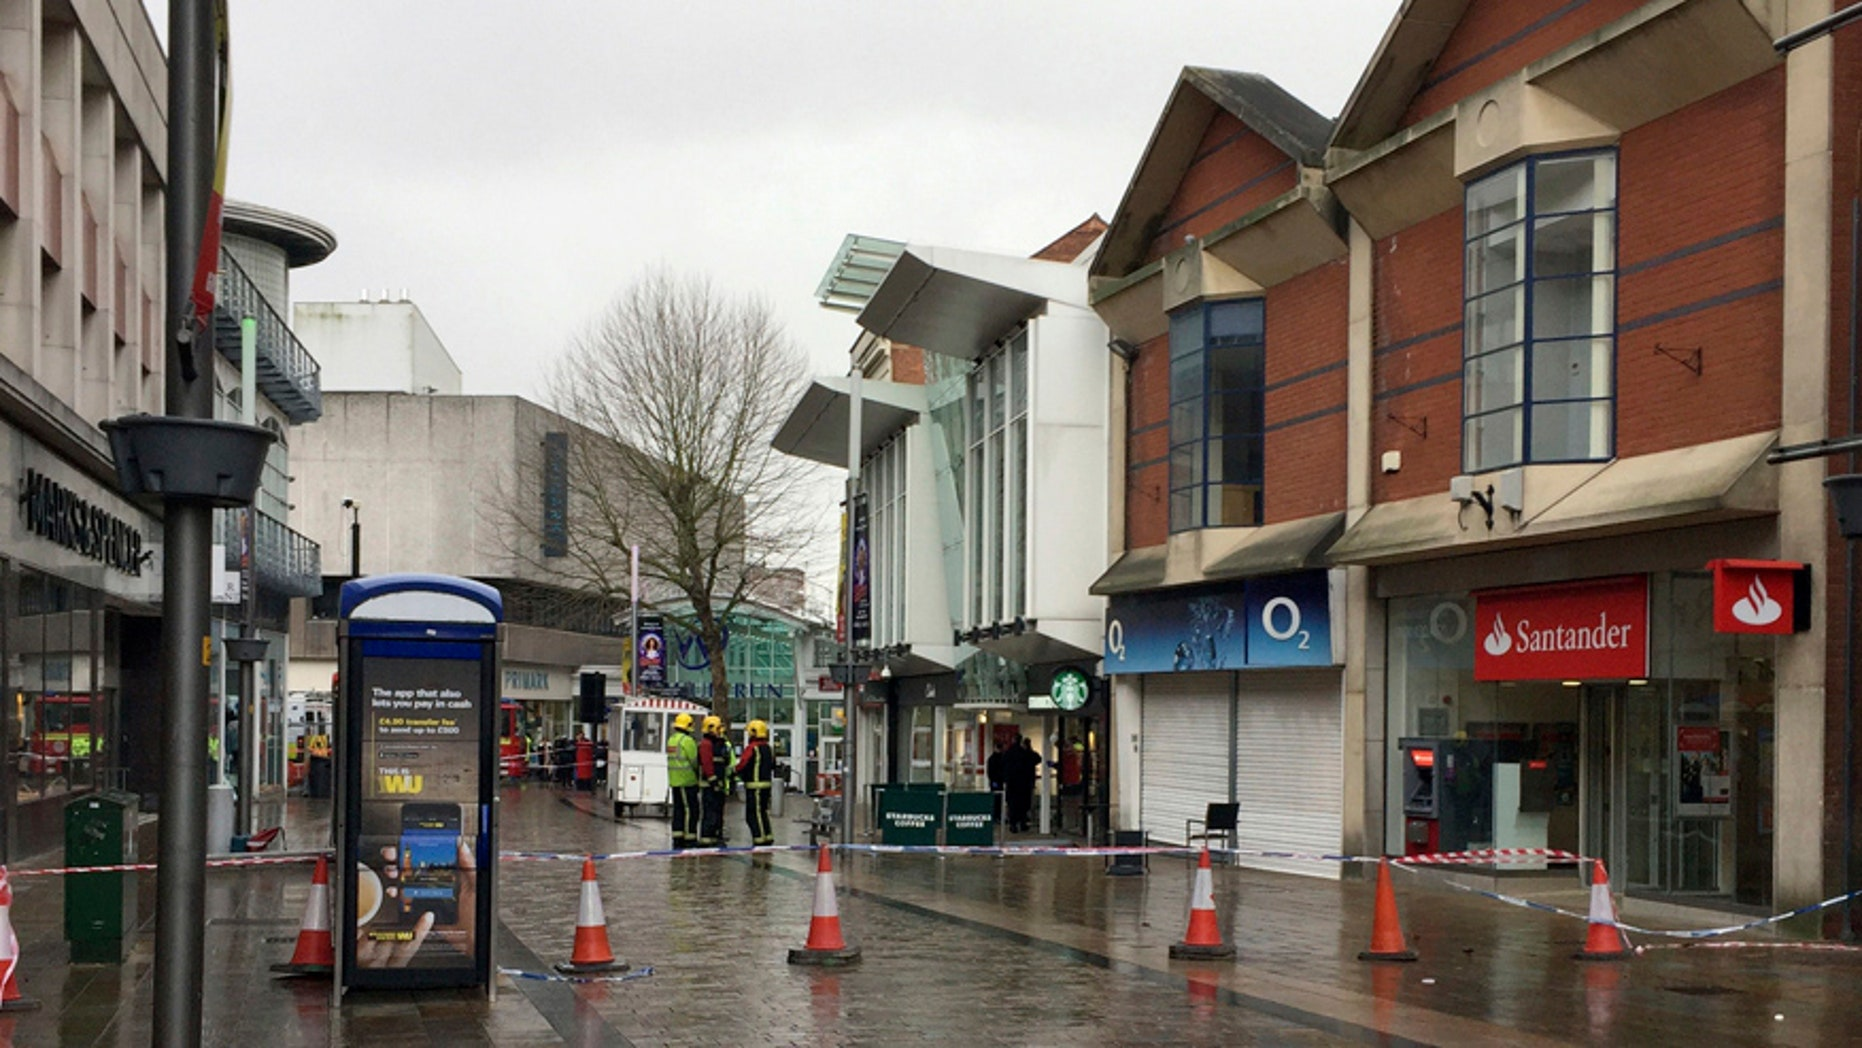 """The scene in Wolverhampton city center after a woman died when she was hit by a piece of roof the """"size of a coffee table"""" during strong winds, Wolverhampton, England, Thursday, Feb. 23, 2017. Flights have been cancelled and commuters were warned they faced delays after Storm Doris reached nearly 90mph. (Matthew Cooper/PA via AP)"""